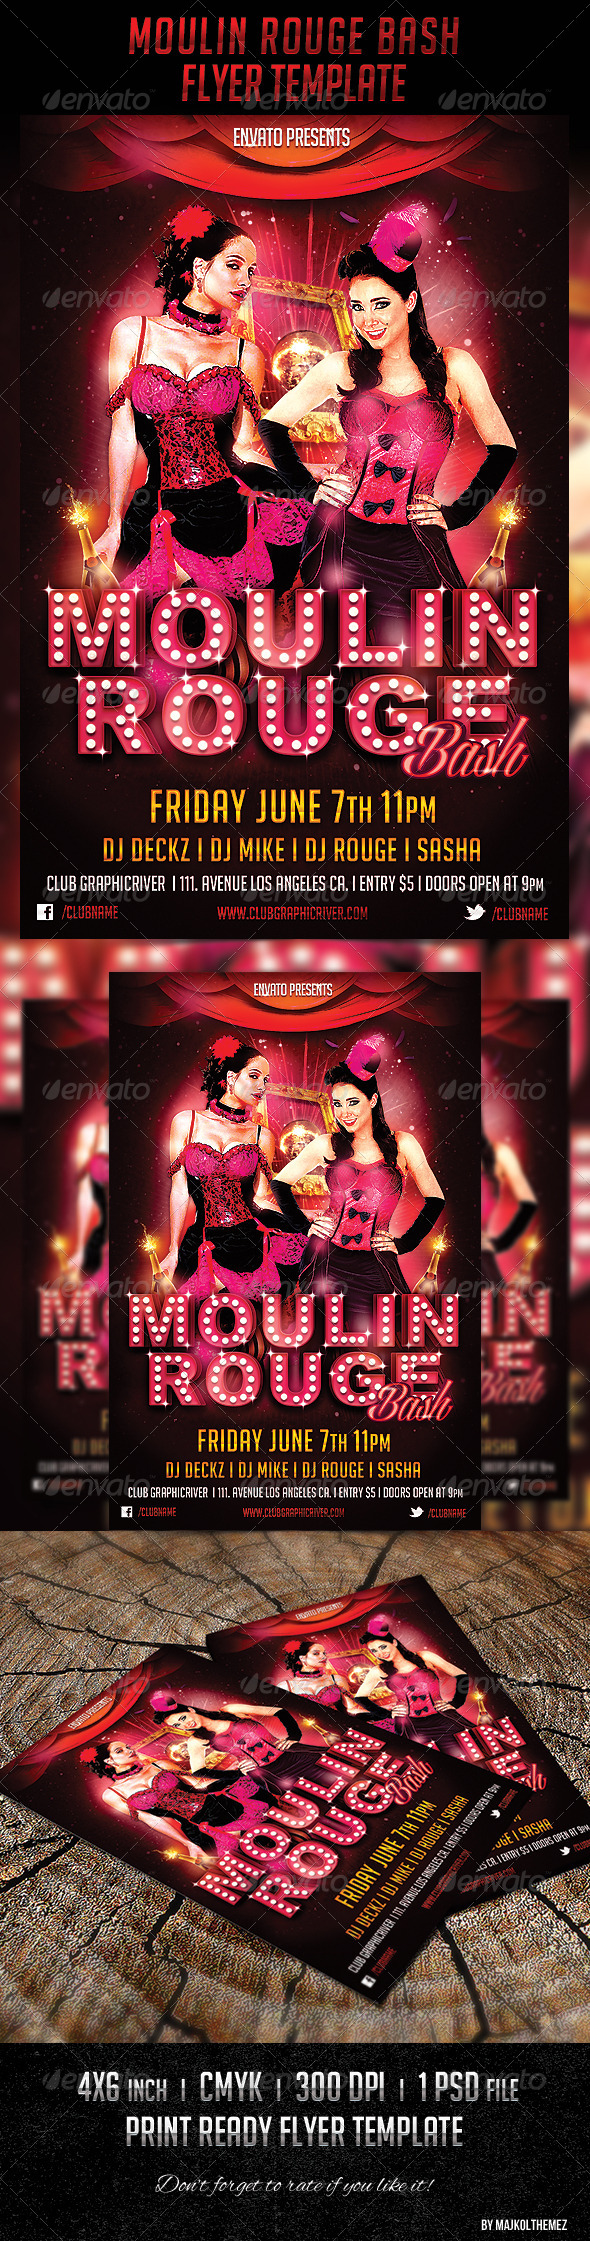 Moulin Rouge Bash Flyer Template - Clubs & Parties Events